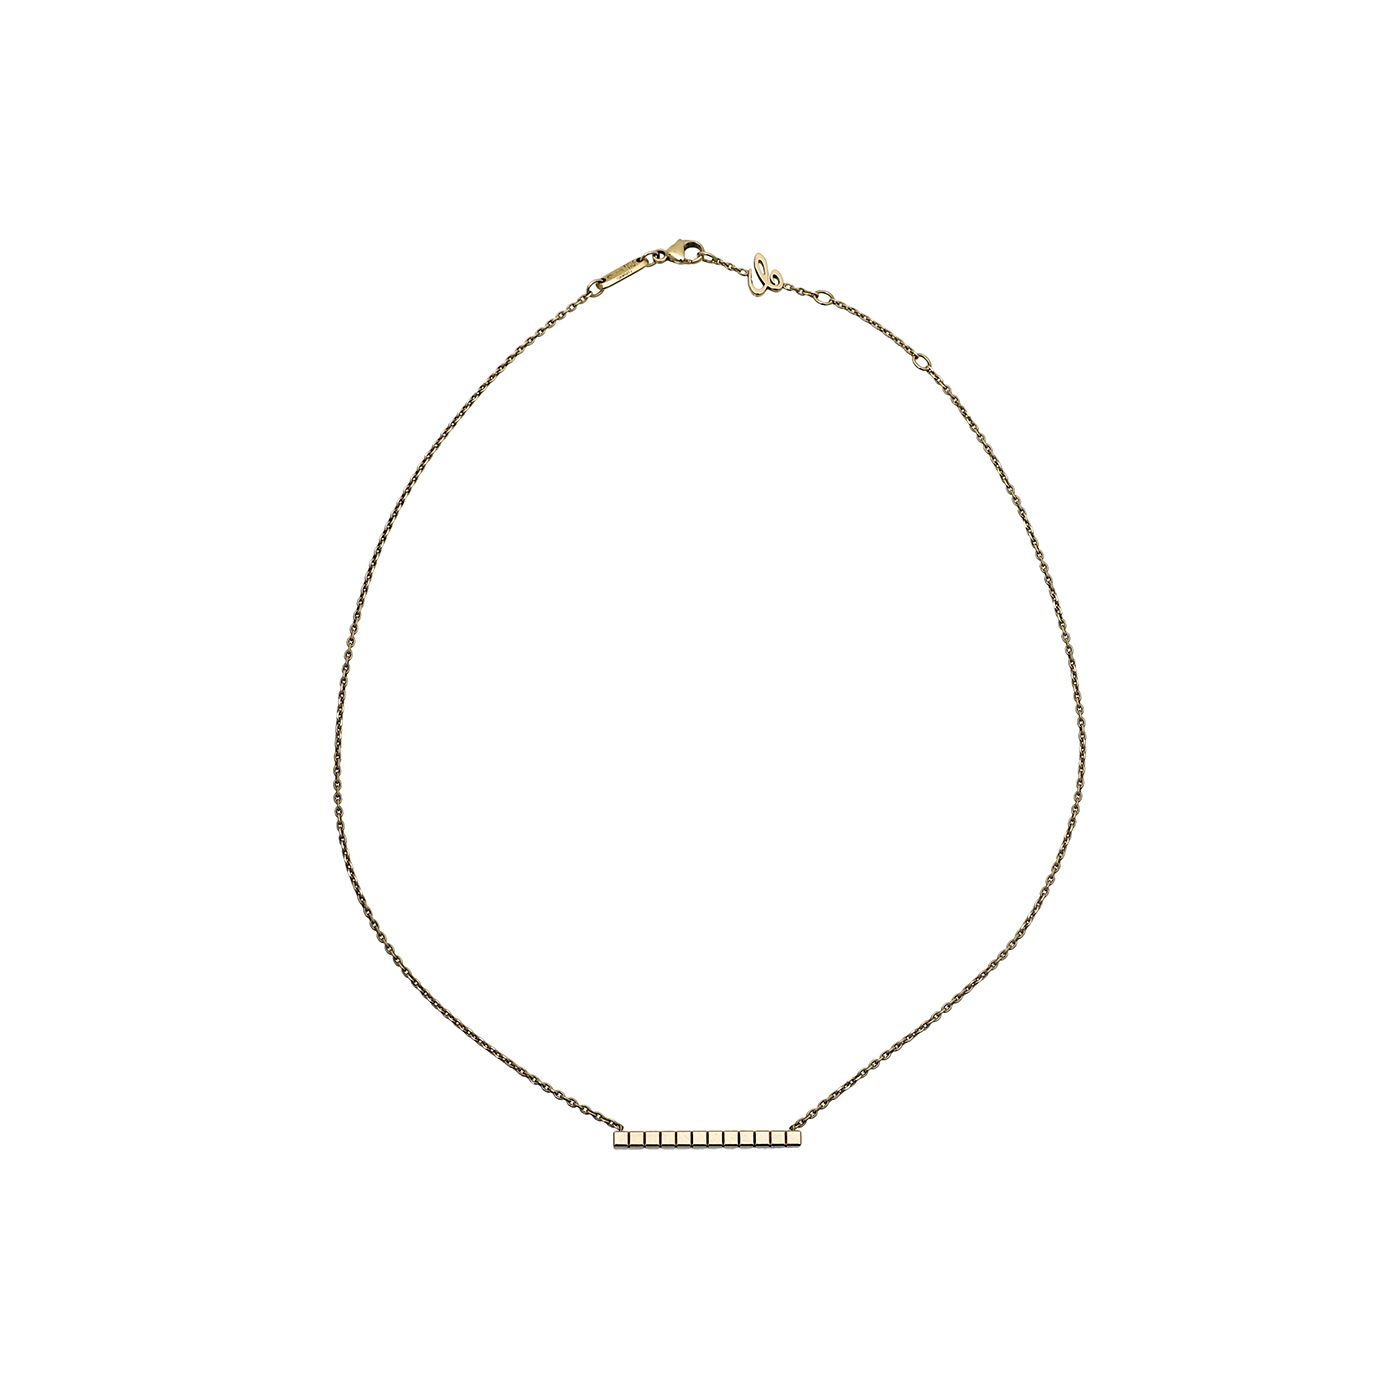 Chopard 18K Yellow Gold Ice Cube Pure Fairmined Necklace